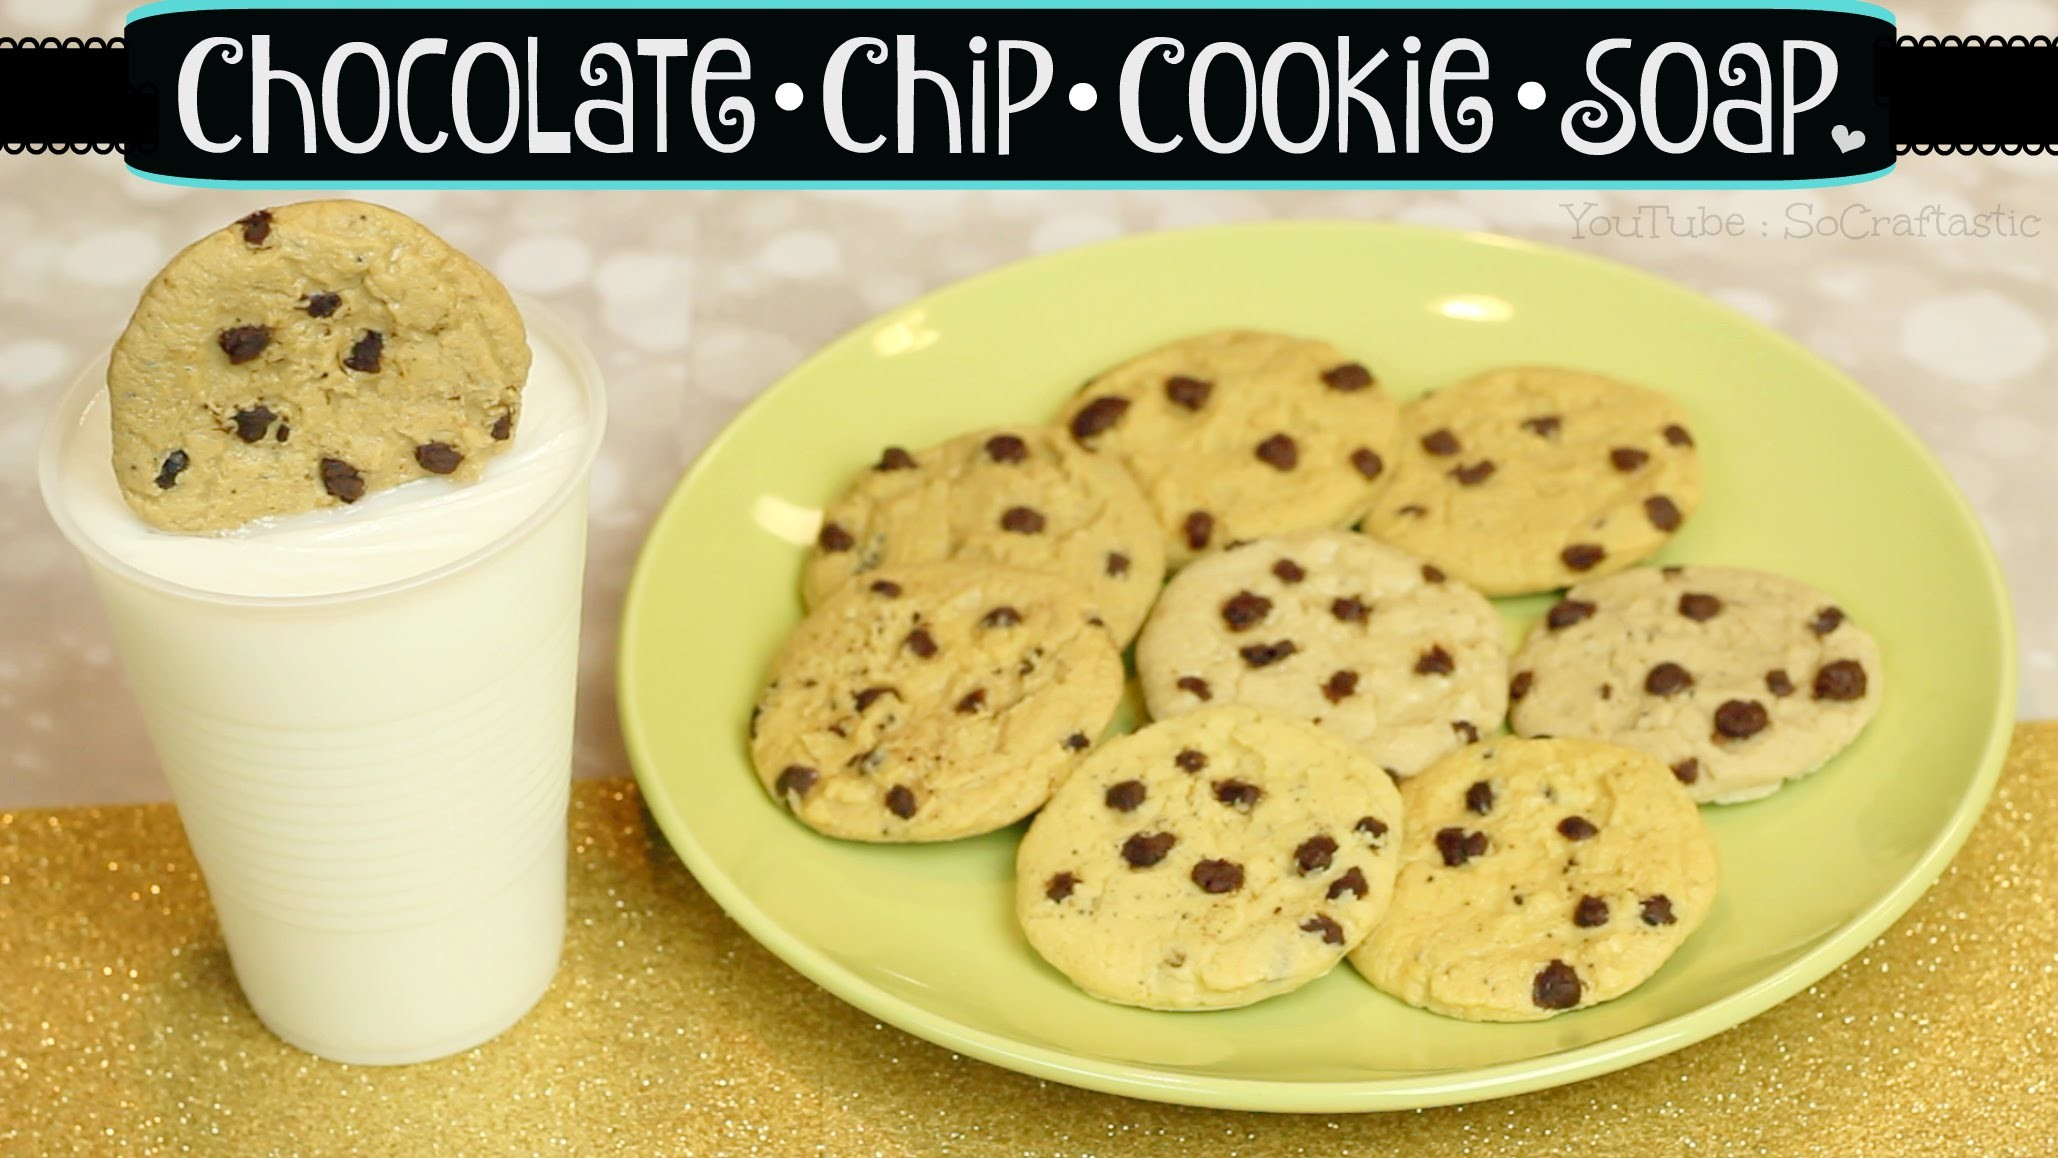 DIY Cookie Soap. Chocolate Chip Cookies & Milk. Melt & Pour Soap Making How To